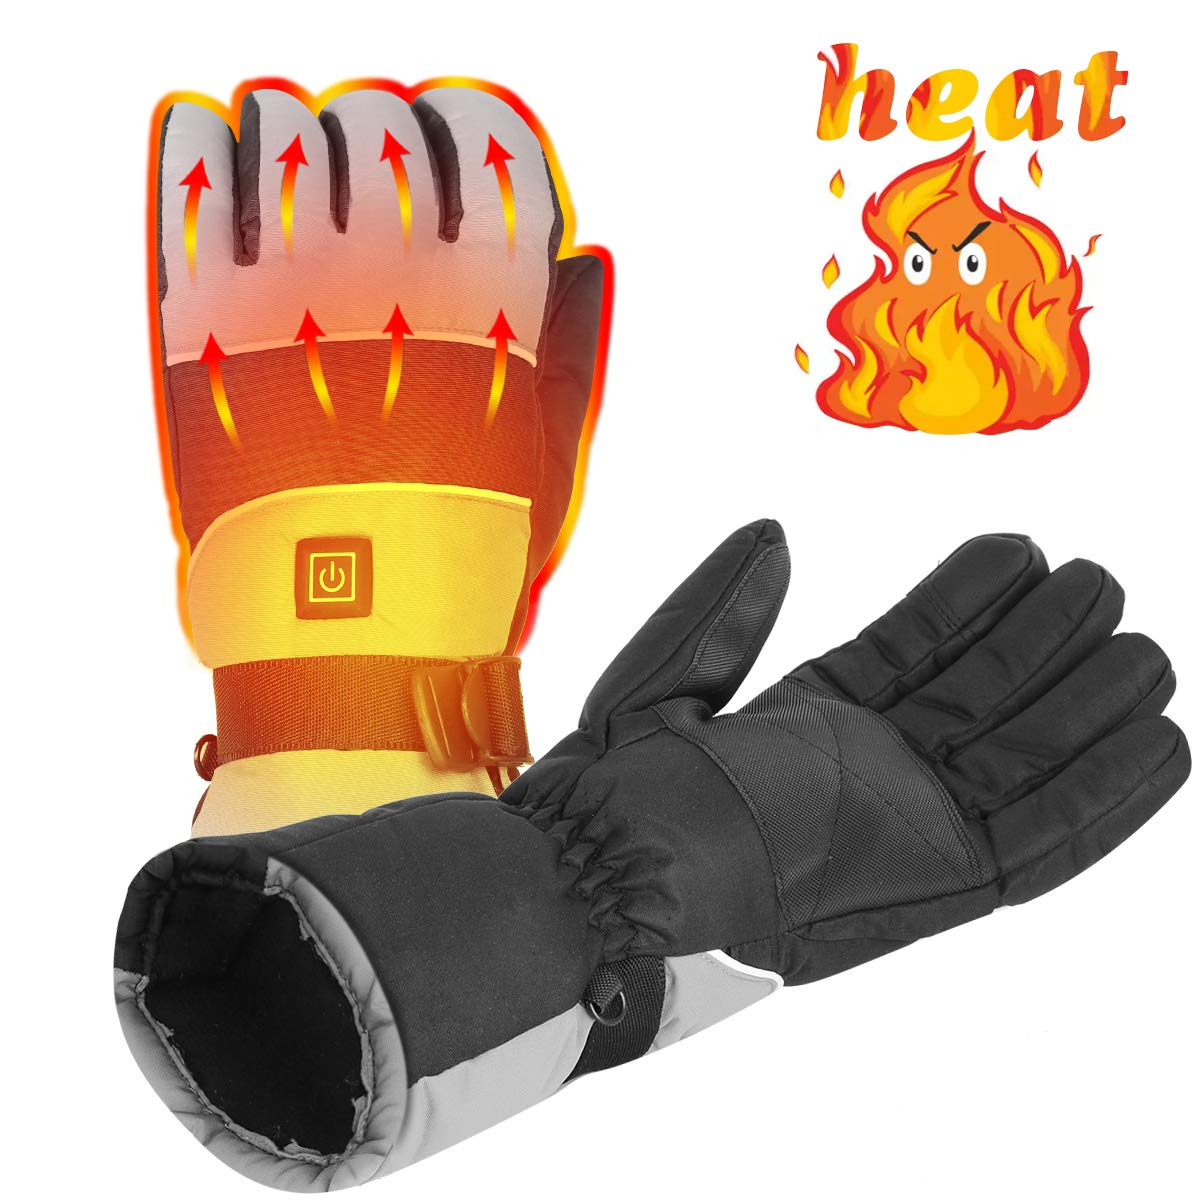 Rockpals Heated Warm Gloves Men Women, Rechargeable Electric Battery Powered Heat Gloves Kit, for Winter Outdoor Sport